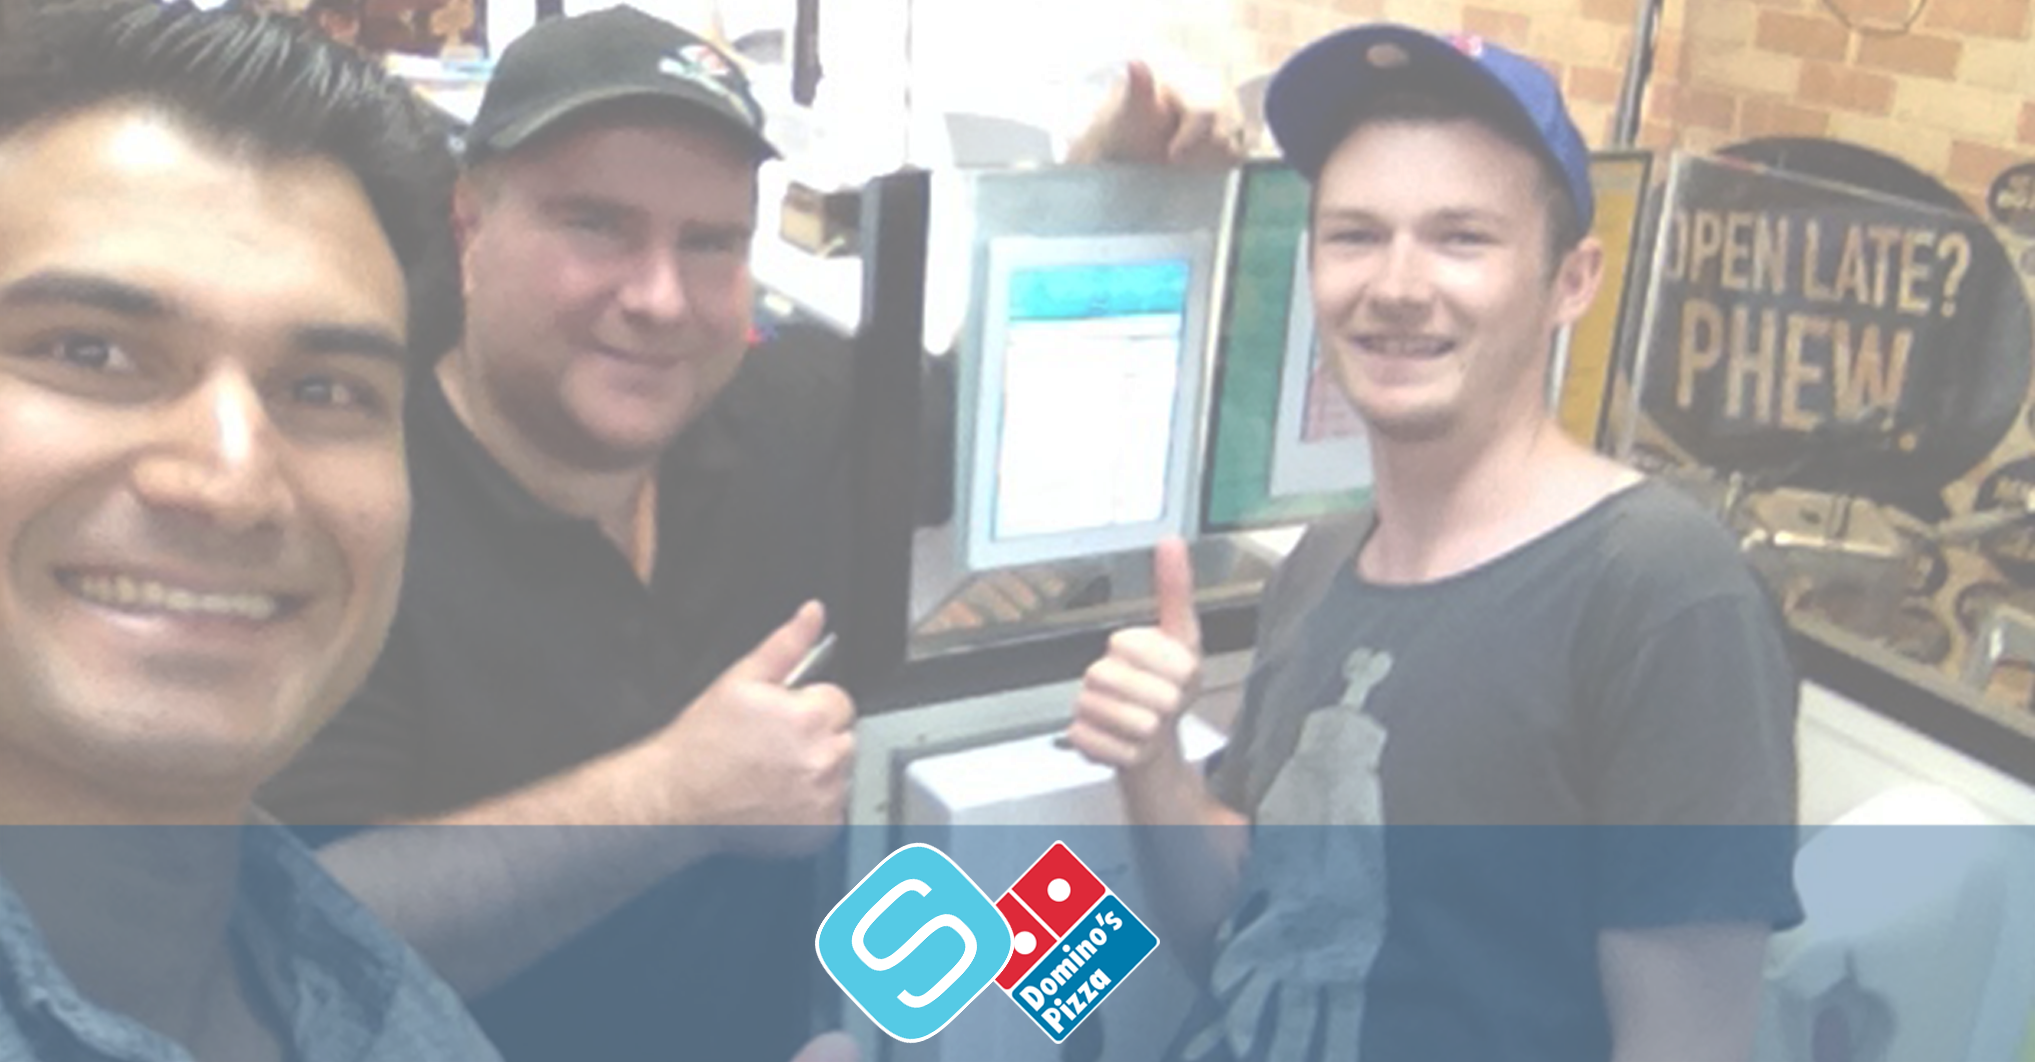 StakTask in Domino's Pizza